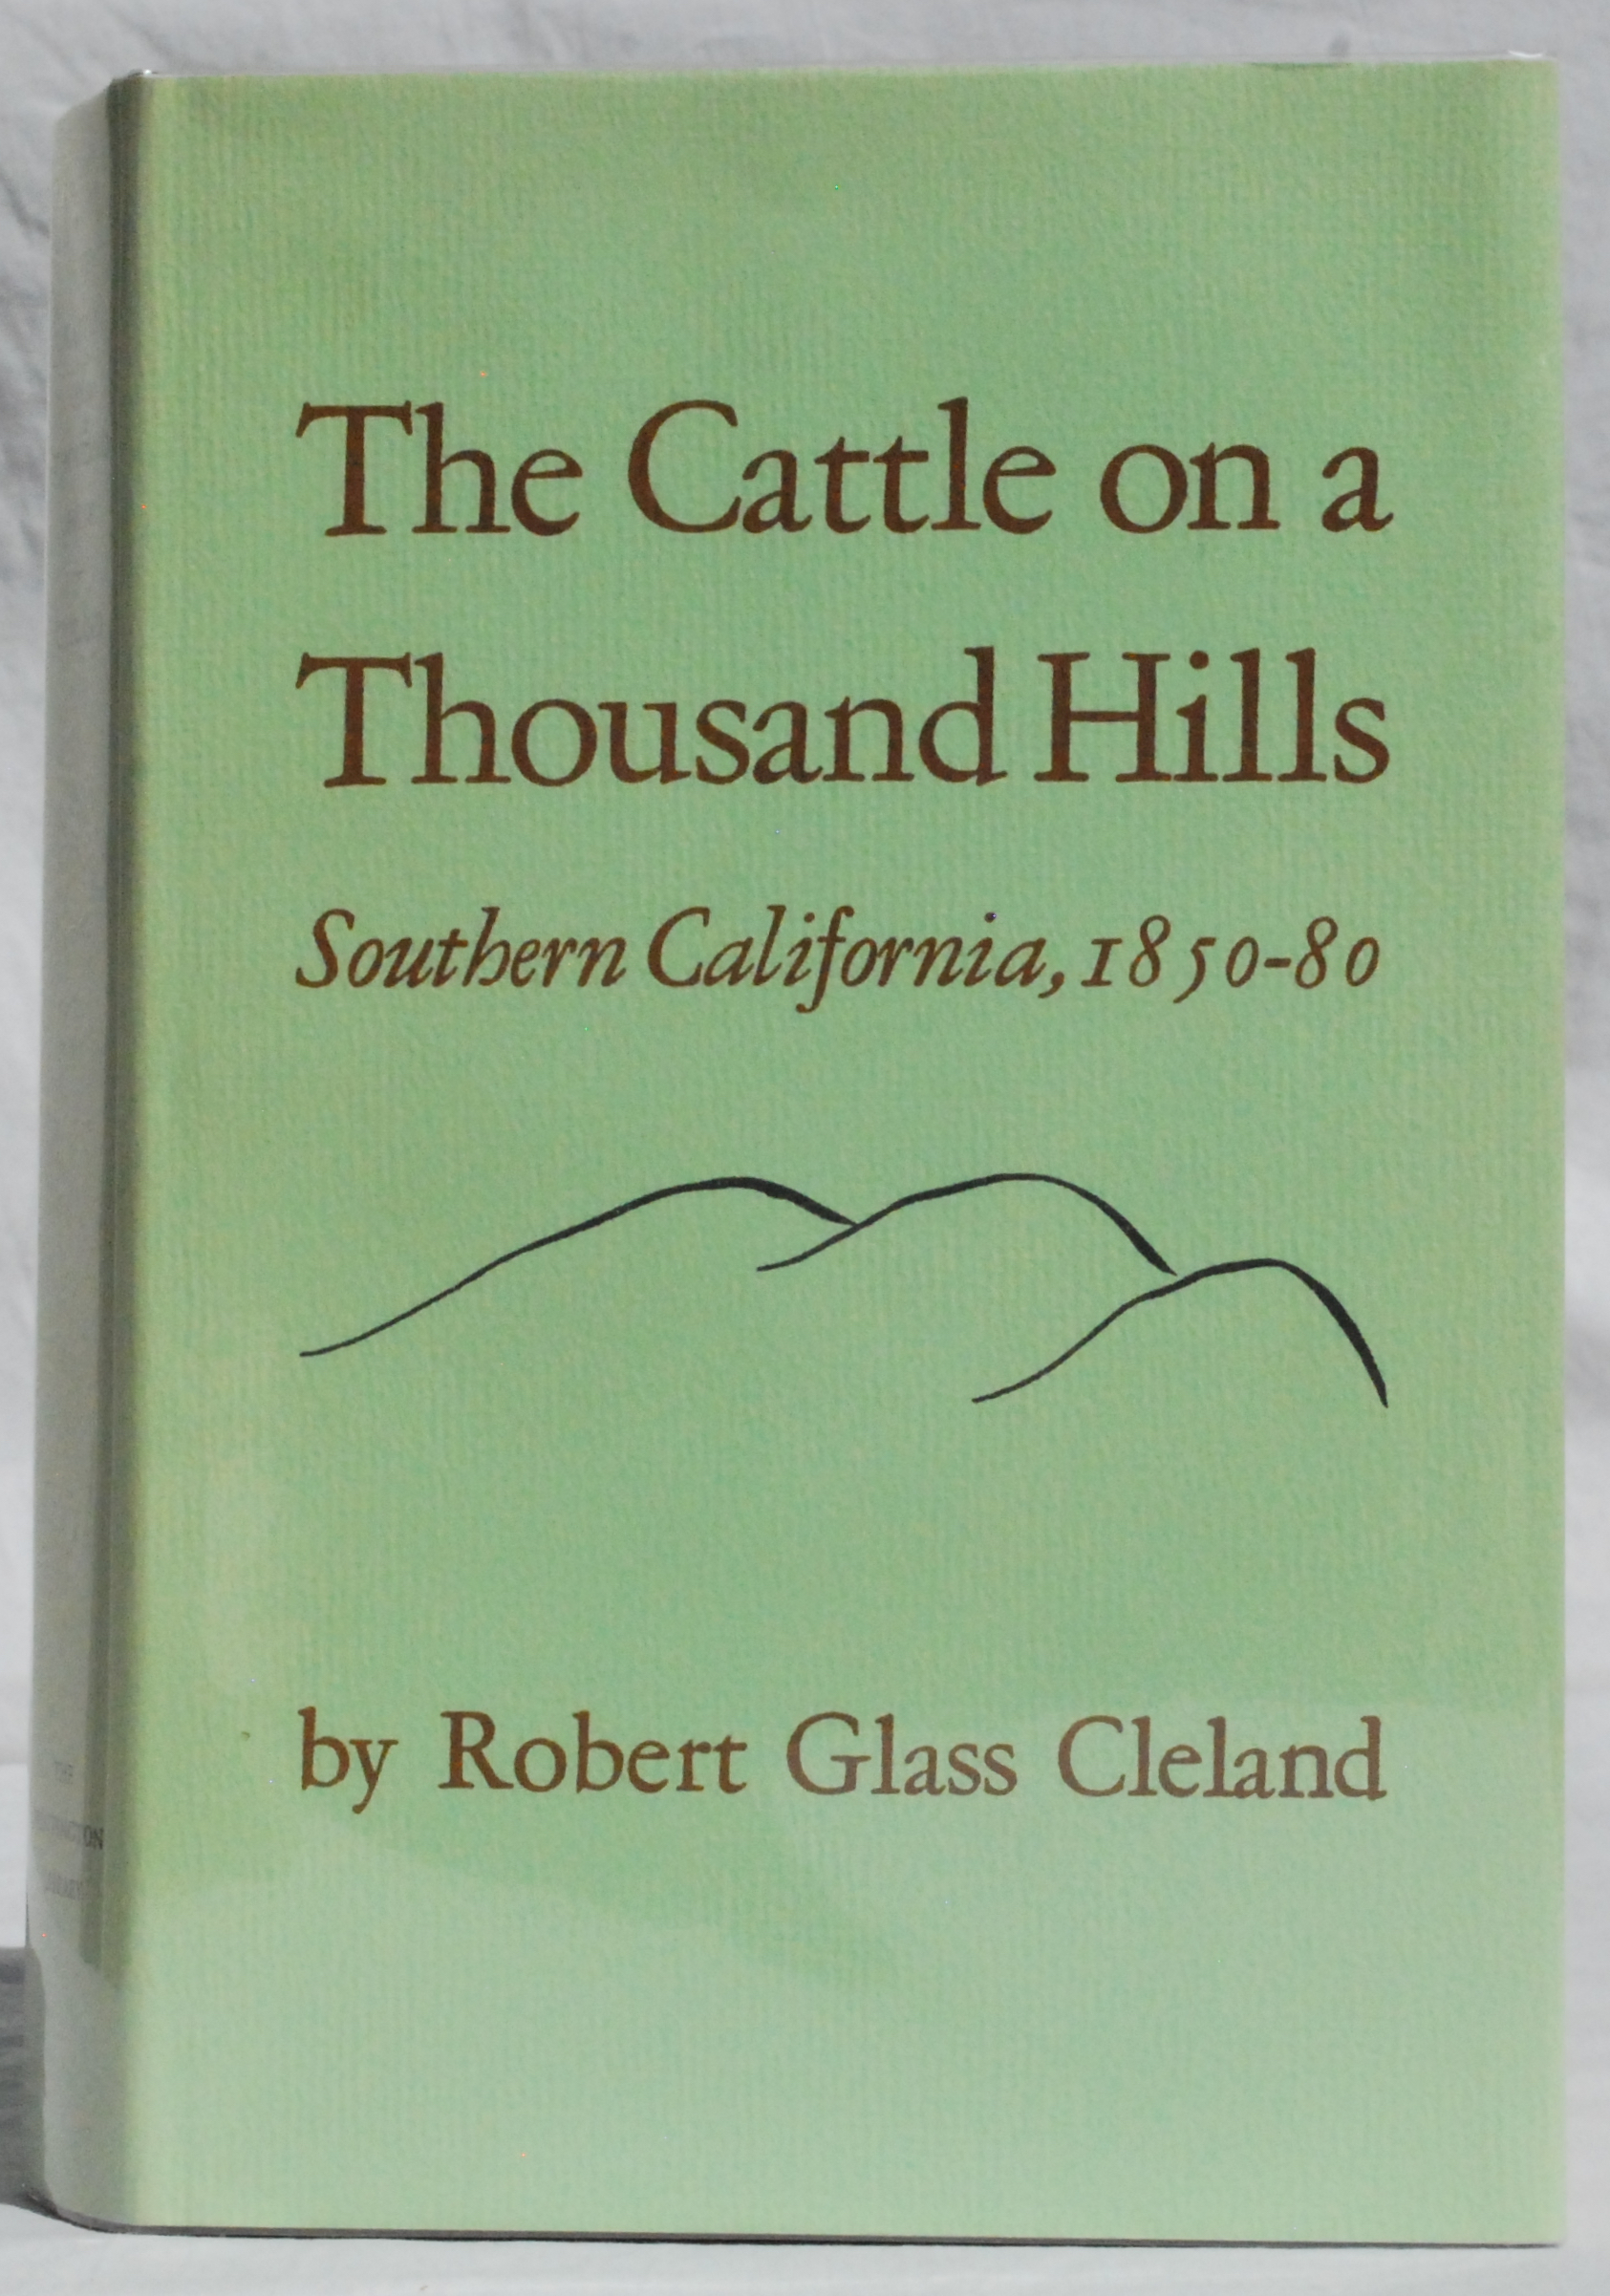 Image for The Cattle on a Thousand Hills, Southern California, 1850-1880.